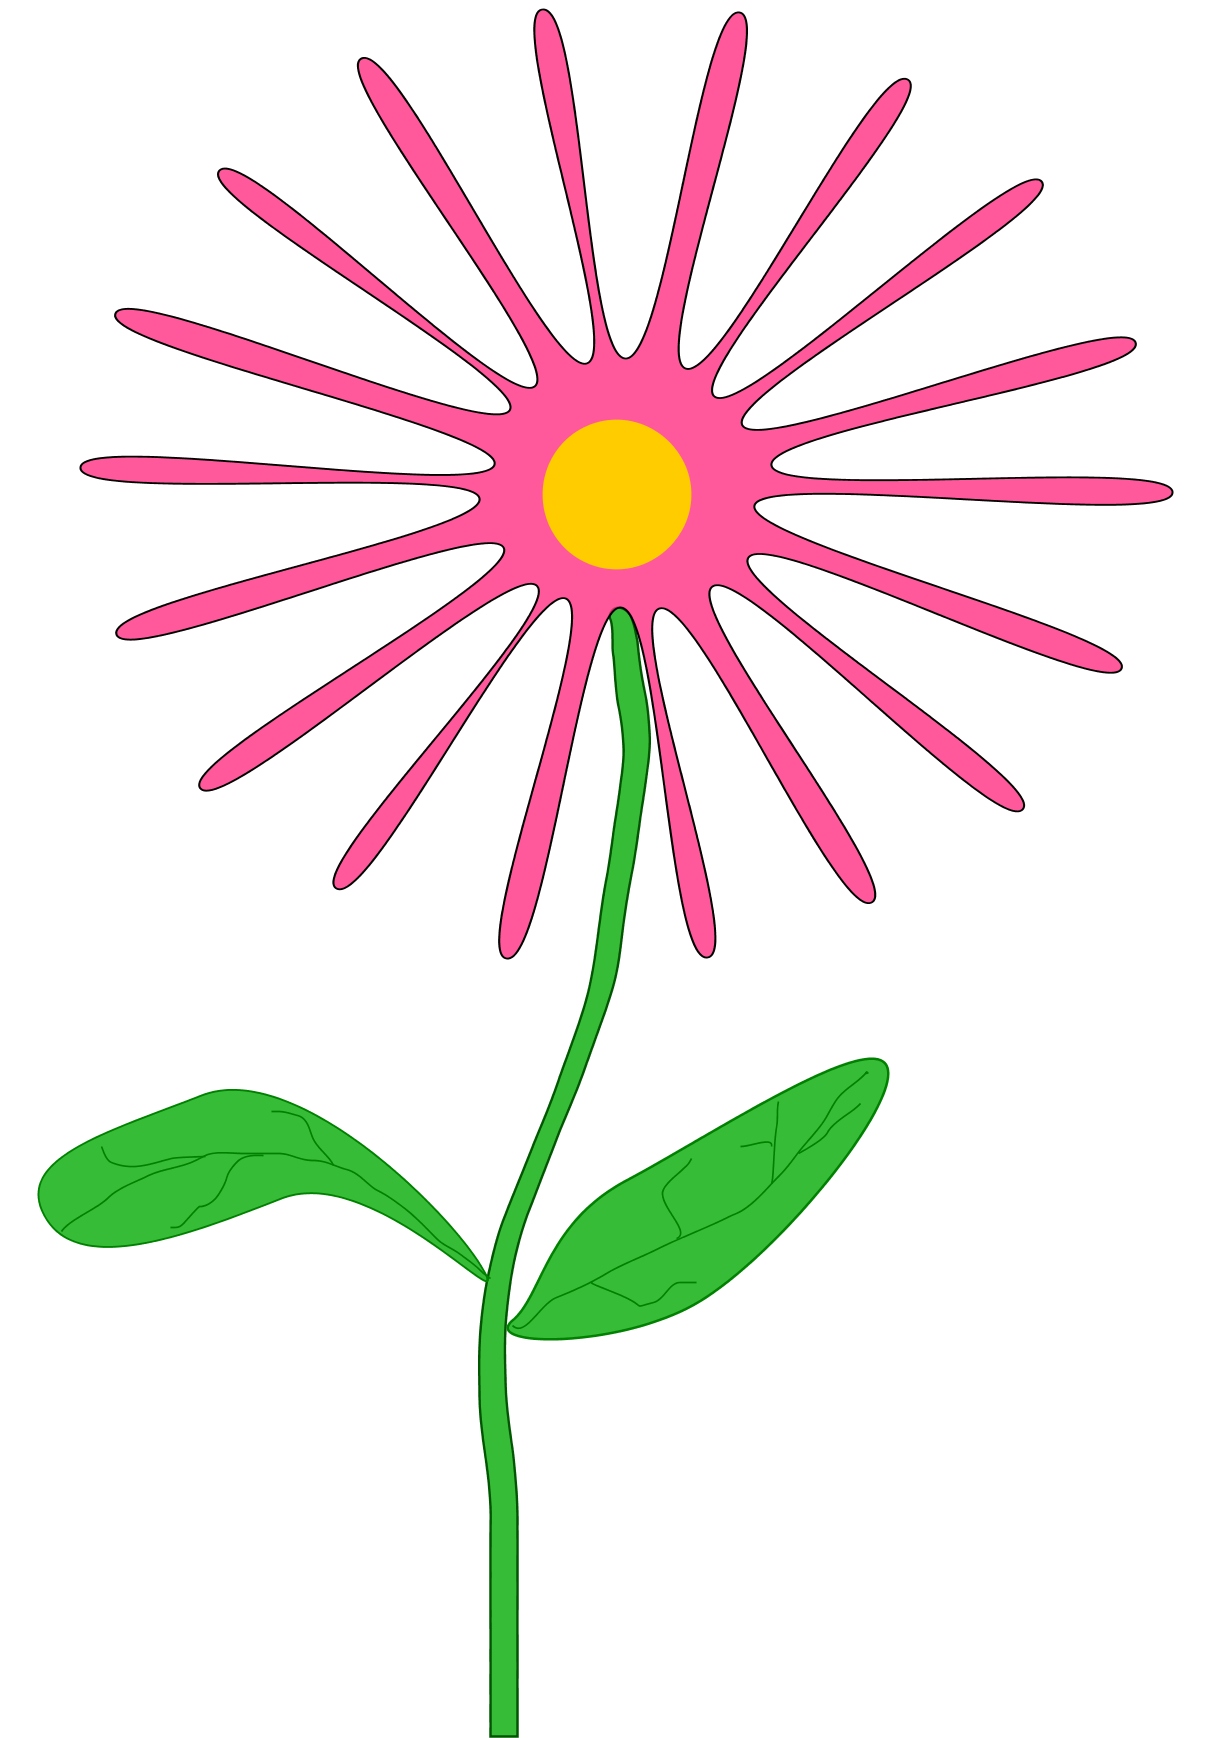 Showering clipart flower. April flowers showers free